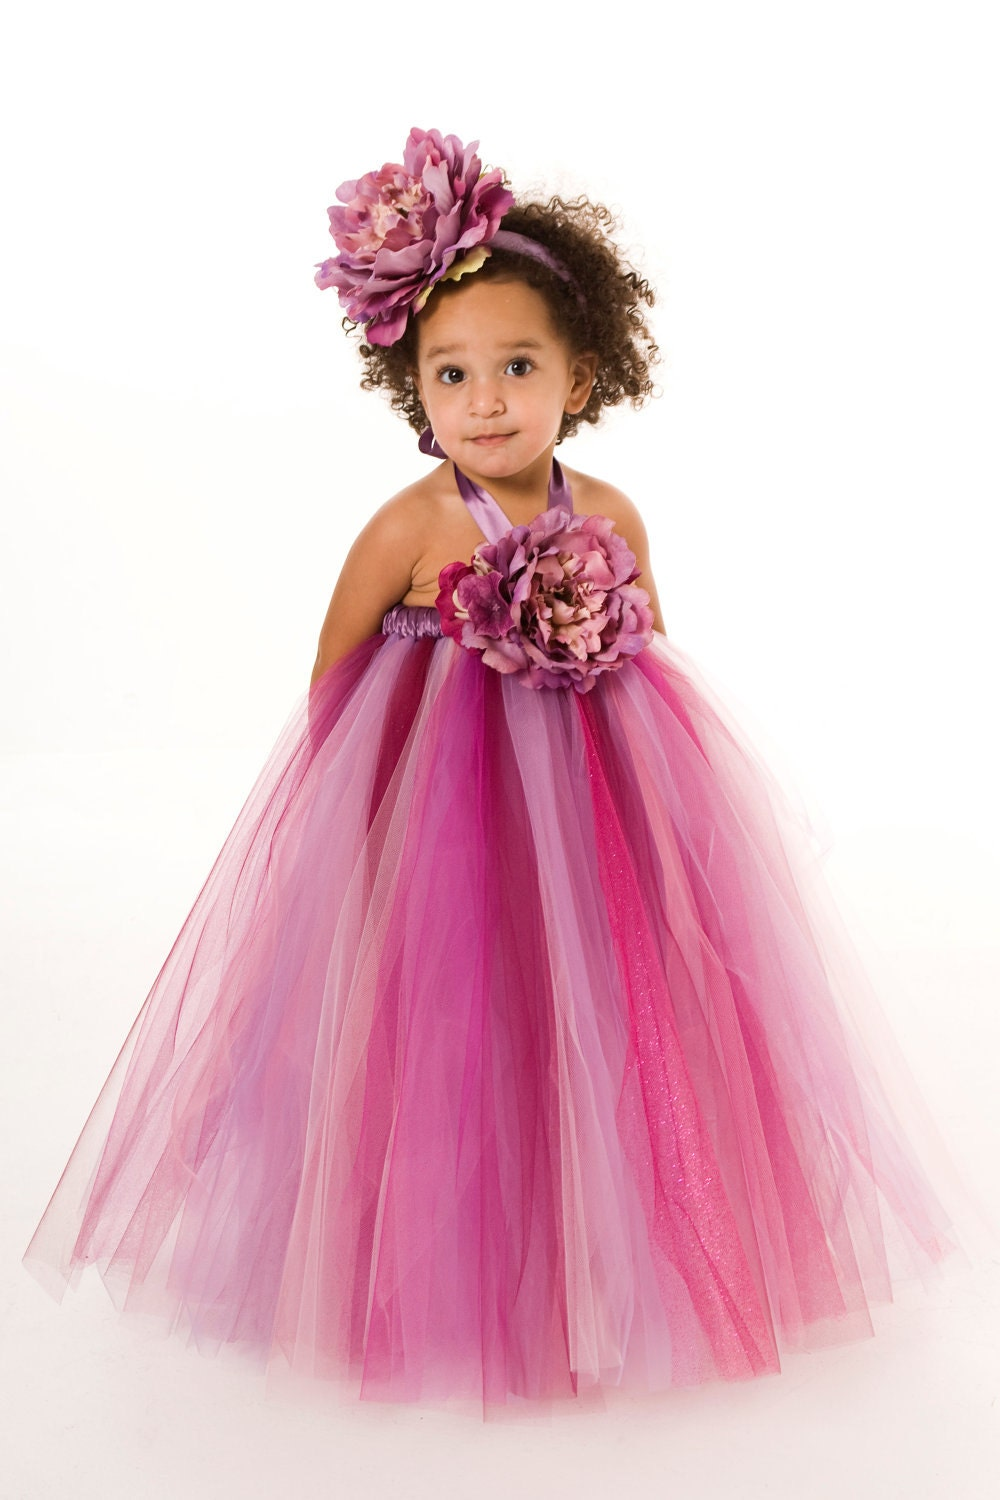 Flower Girl Tutu Dress - Purple - Sugar Berry - 12 Month to 2 Toddler Girl